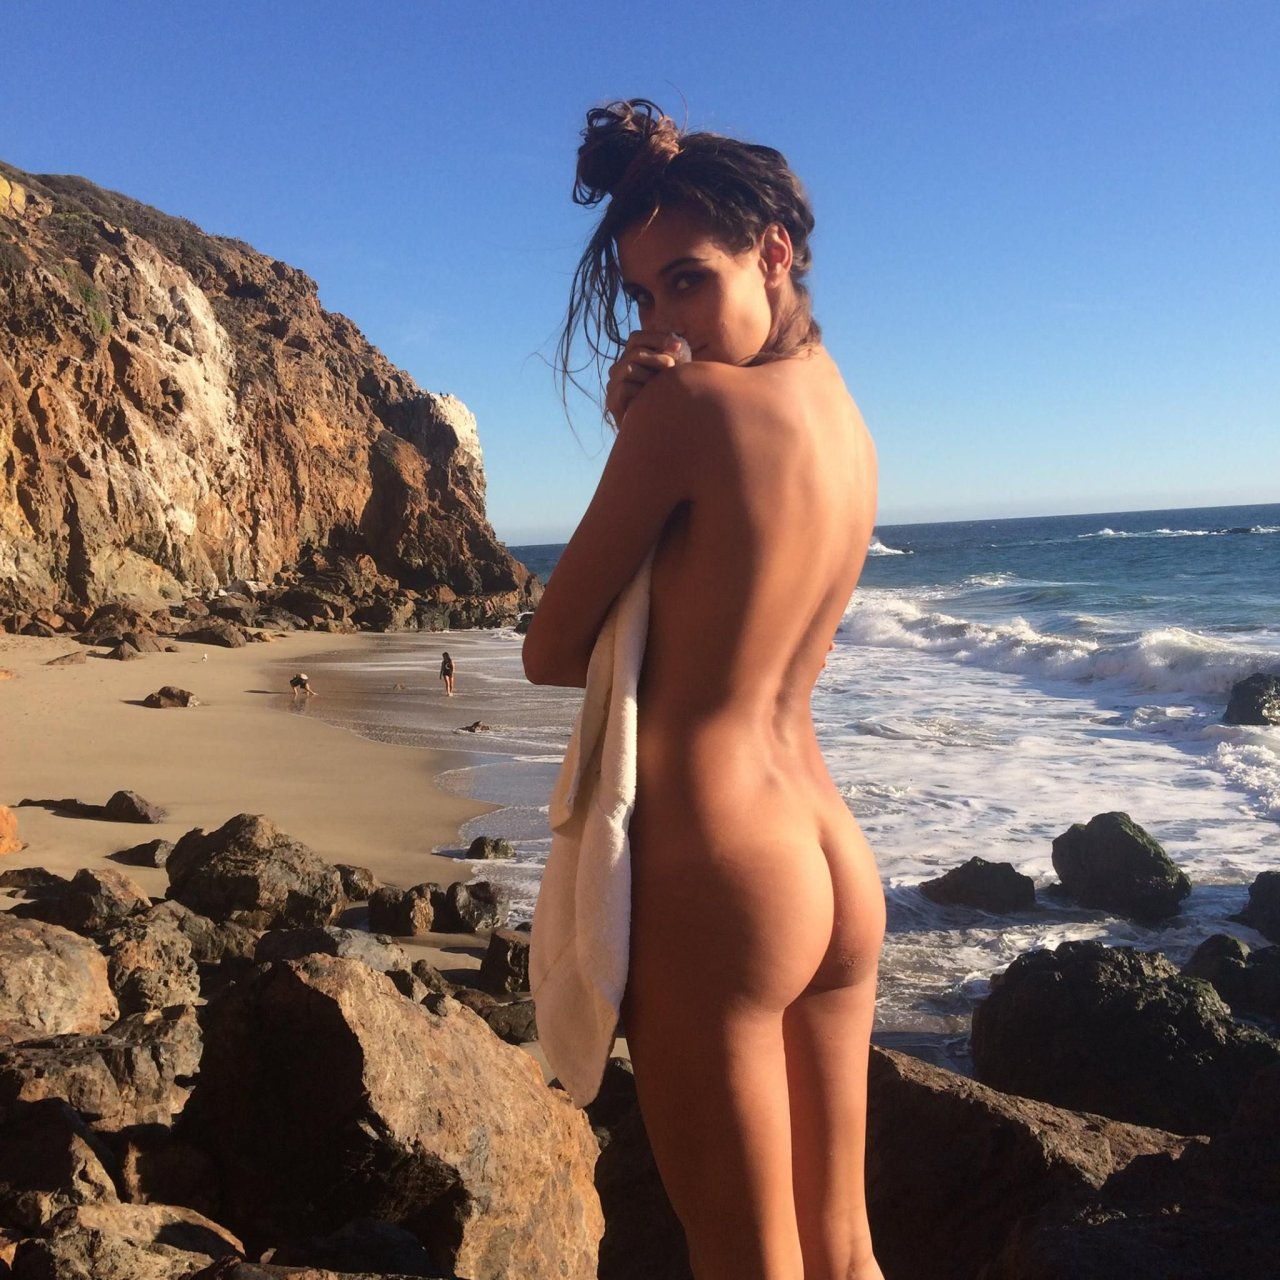 anna herrin leaked 46 photos thefappening